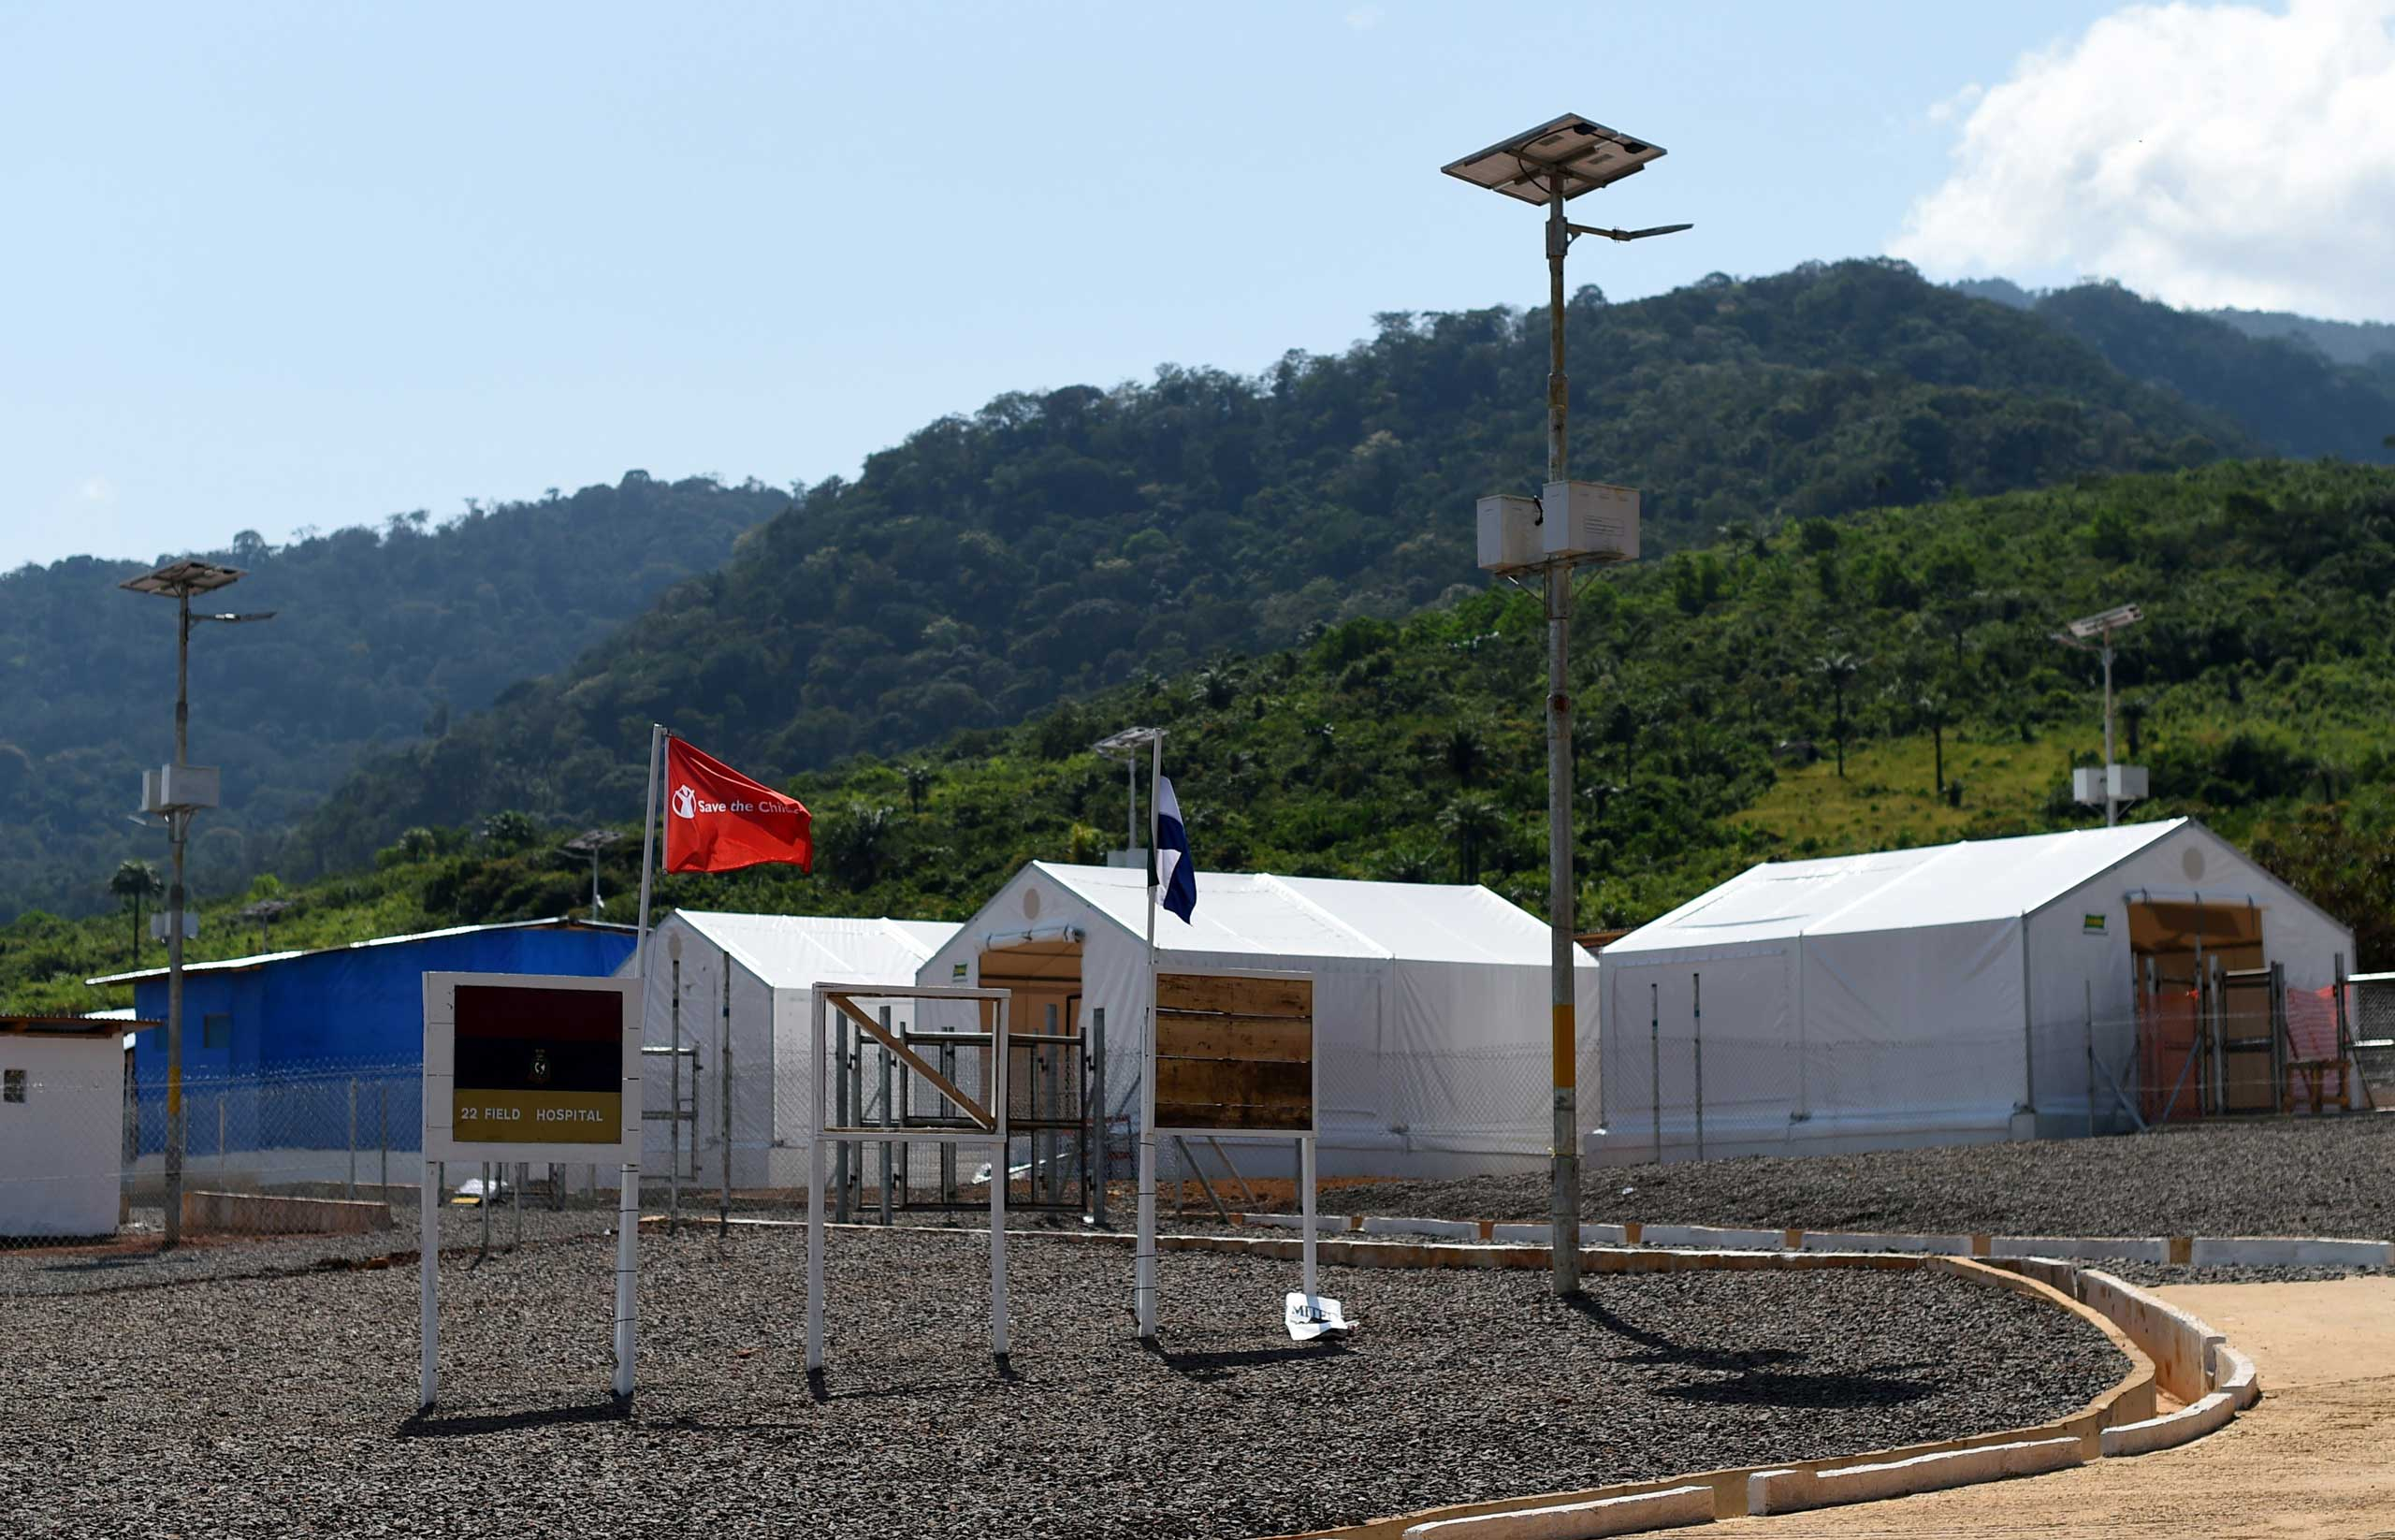 The Kerry Town Ebola treatment center on the outskirts of Freetown, Sierra Leone in 2014.